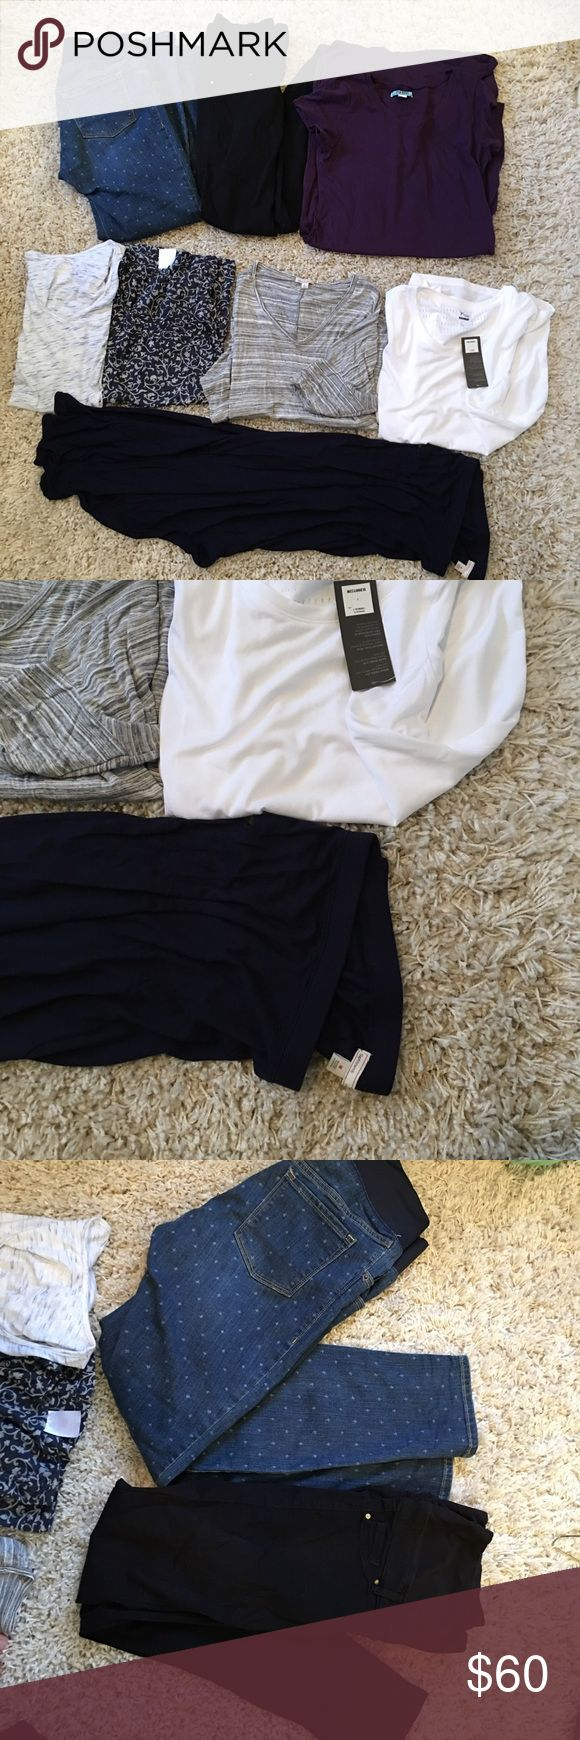 Medium size Maternity lot! H&M, Old Navy, Gap. Awesome maternity clothes! All worn once or twice. Black h&m skinny jeggings, size 10, fits like 8. Old navy jeans, size 8. Purple old navy dress size medium. Old navy and gap grey shirts. Blue short sleeve shirt. Brand new old navy athletic shirt size large. Navy high low knit skirt. H&M Other